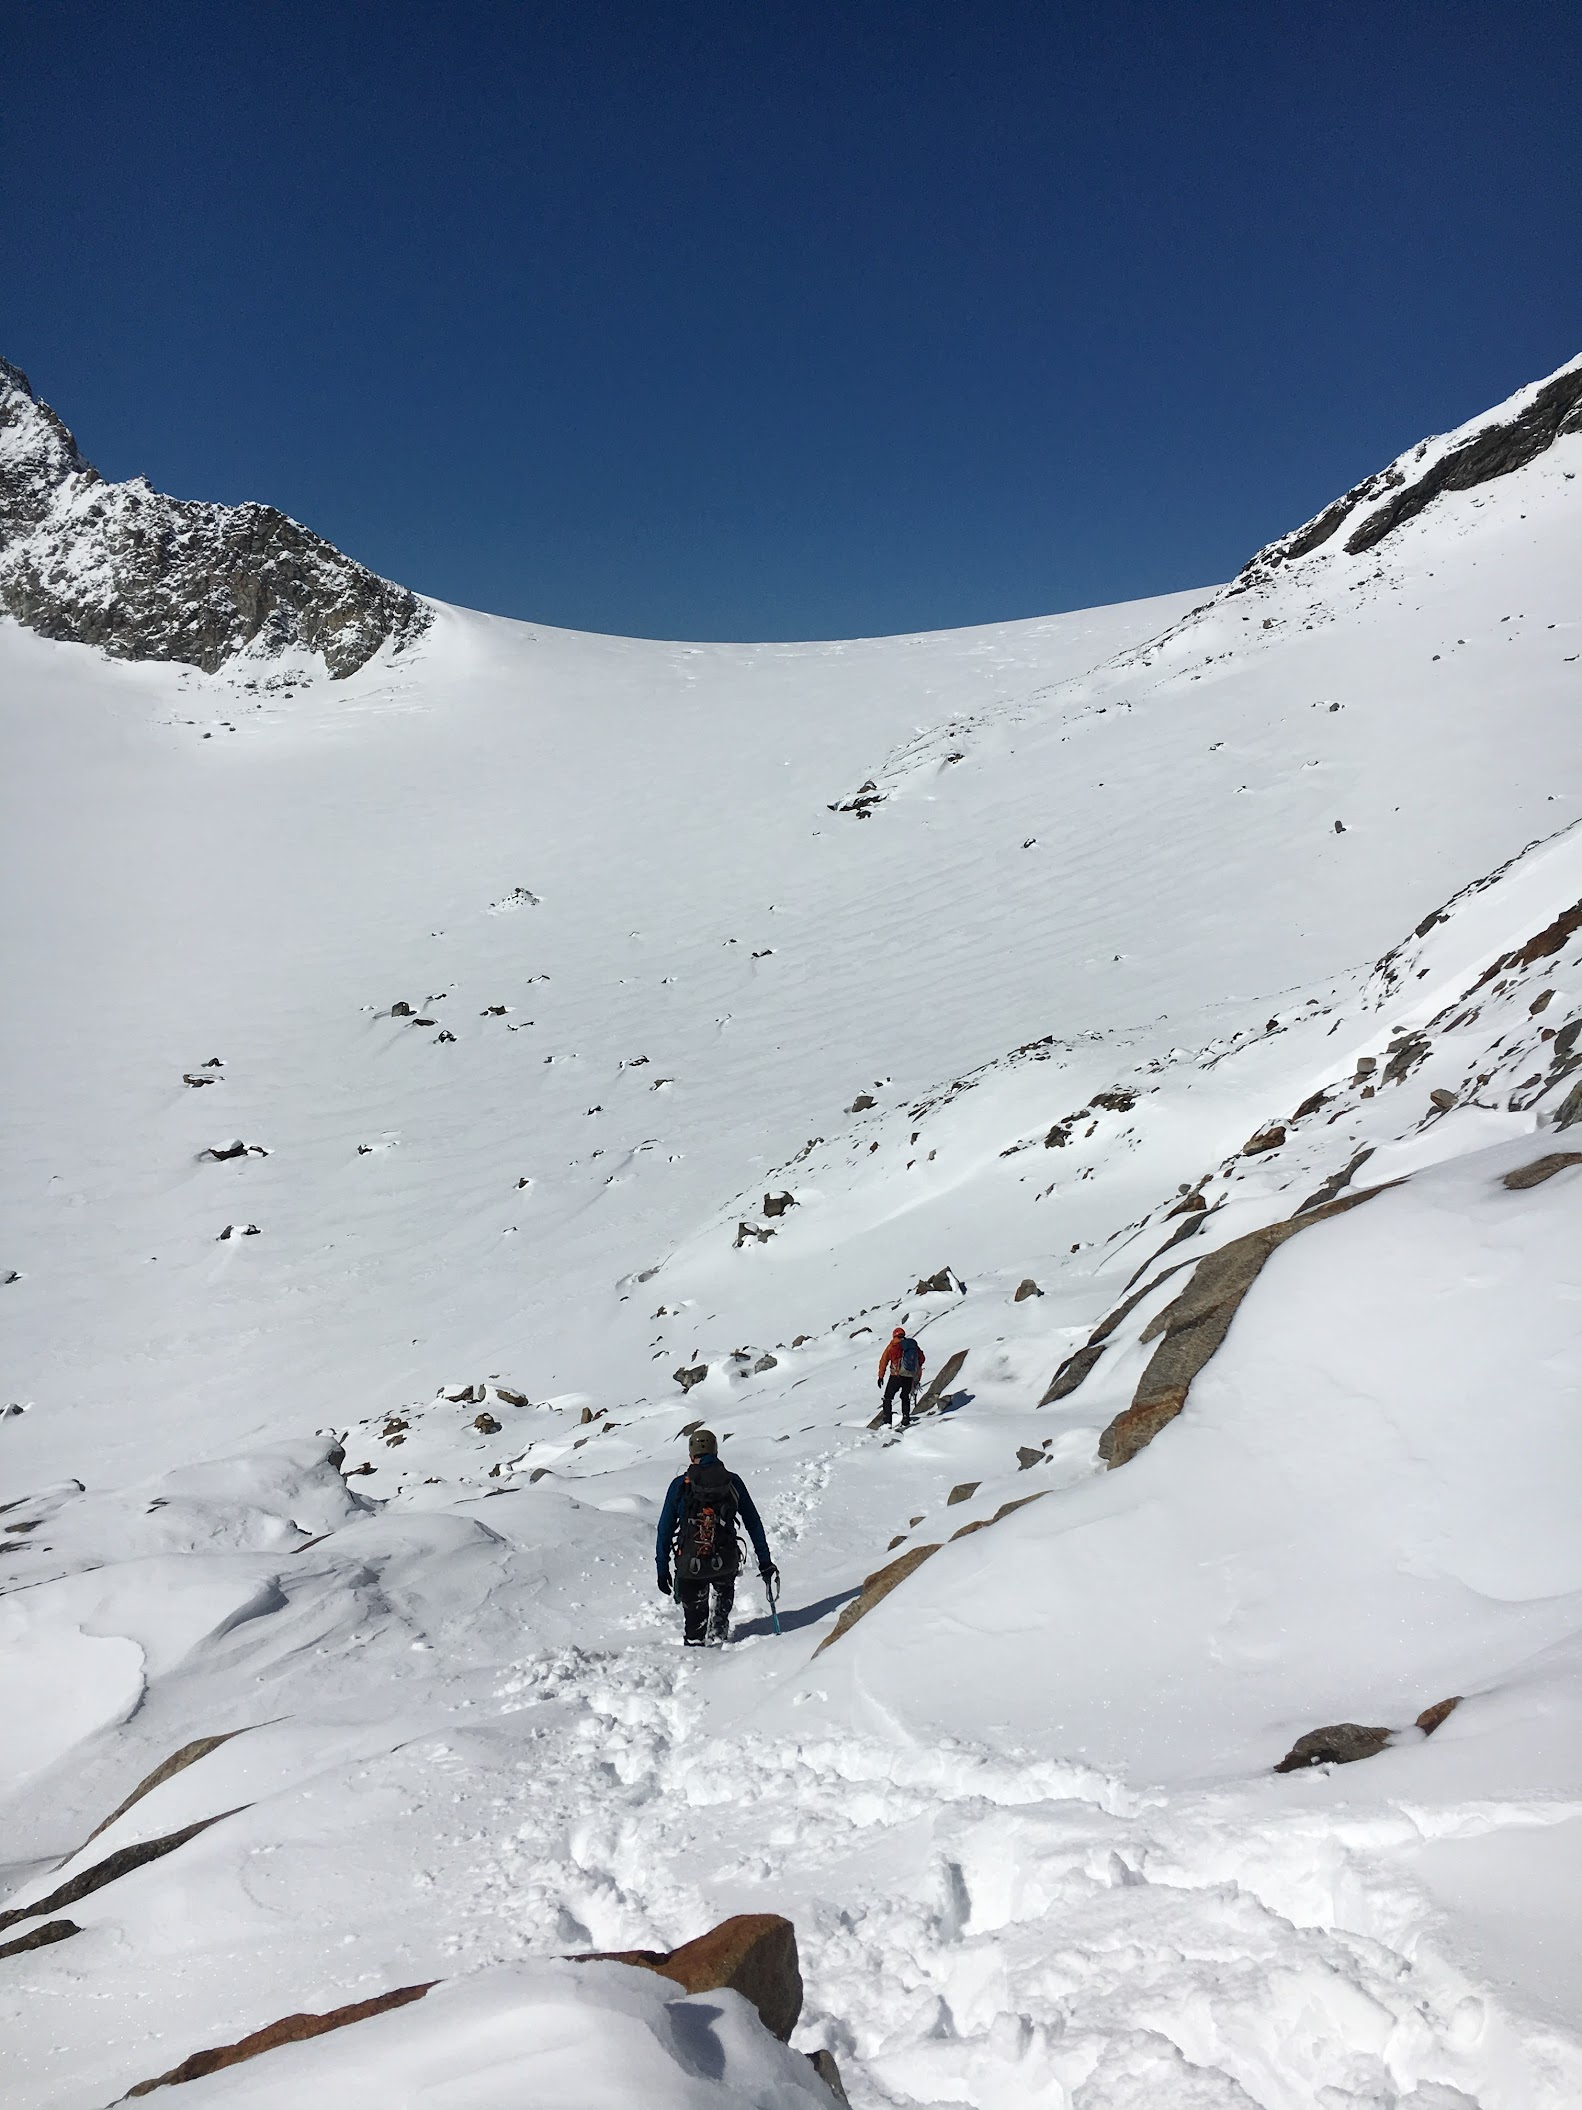 Descending to the Silvretta glacier